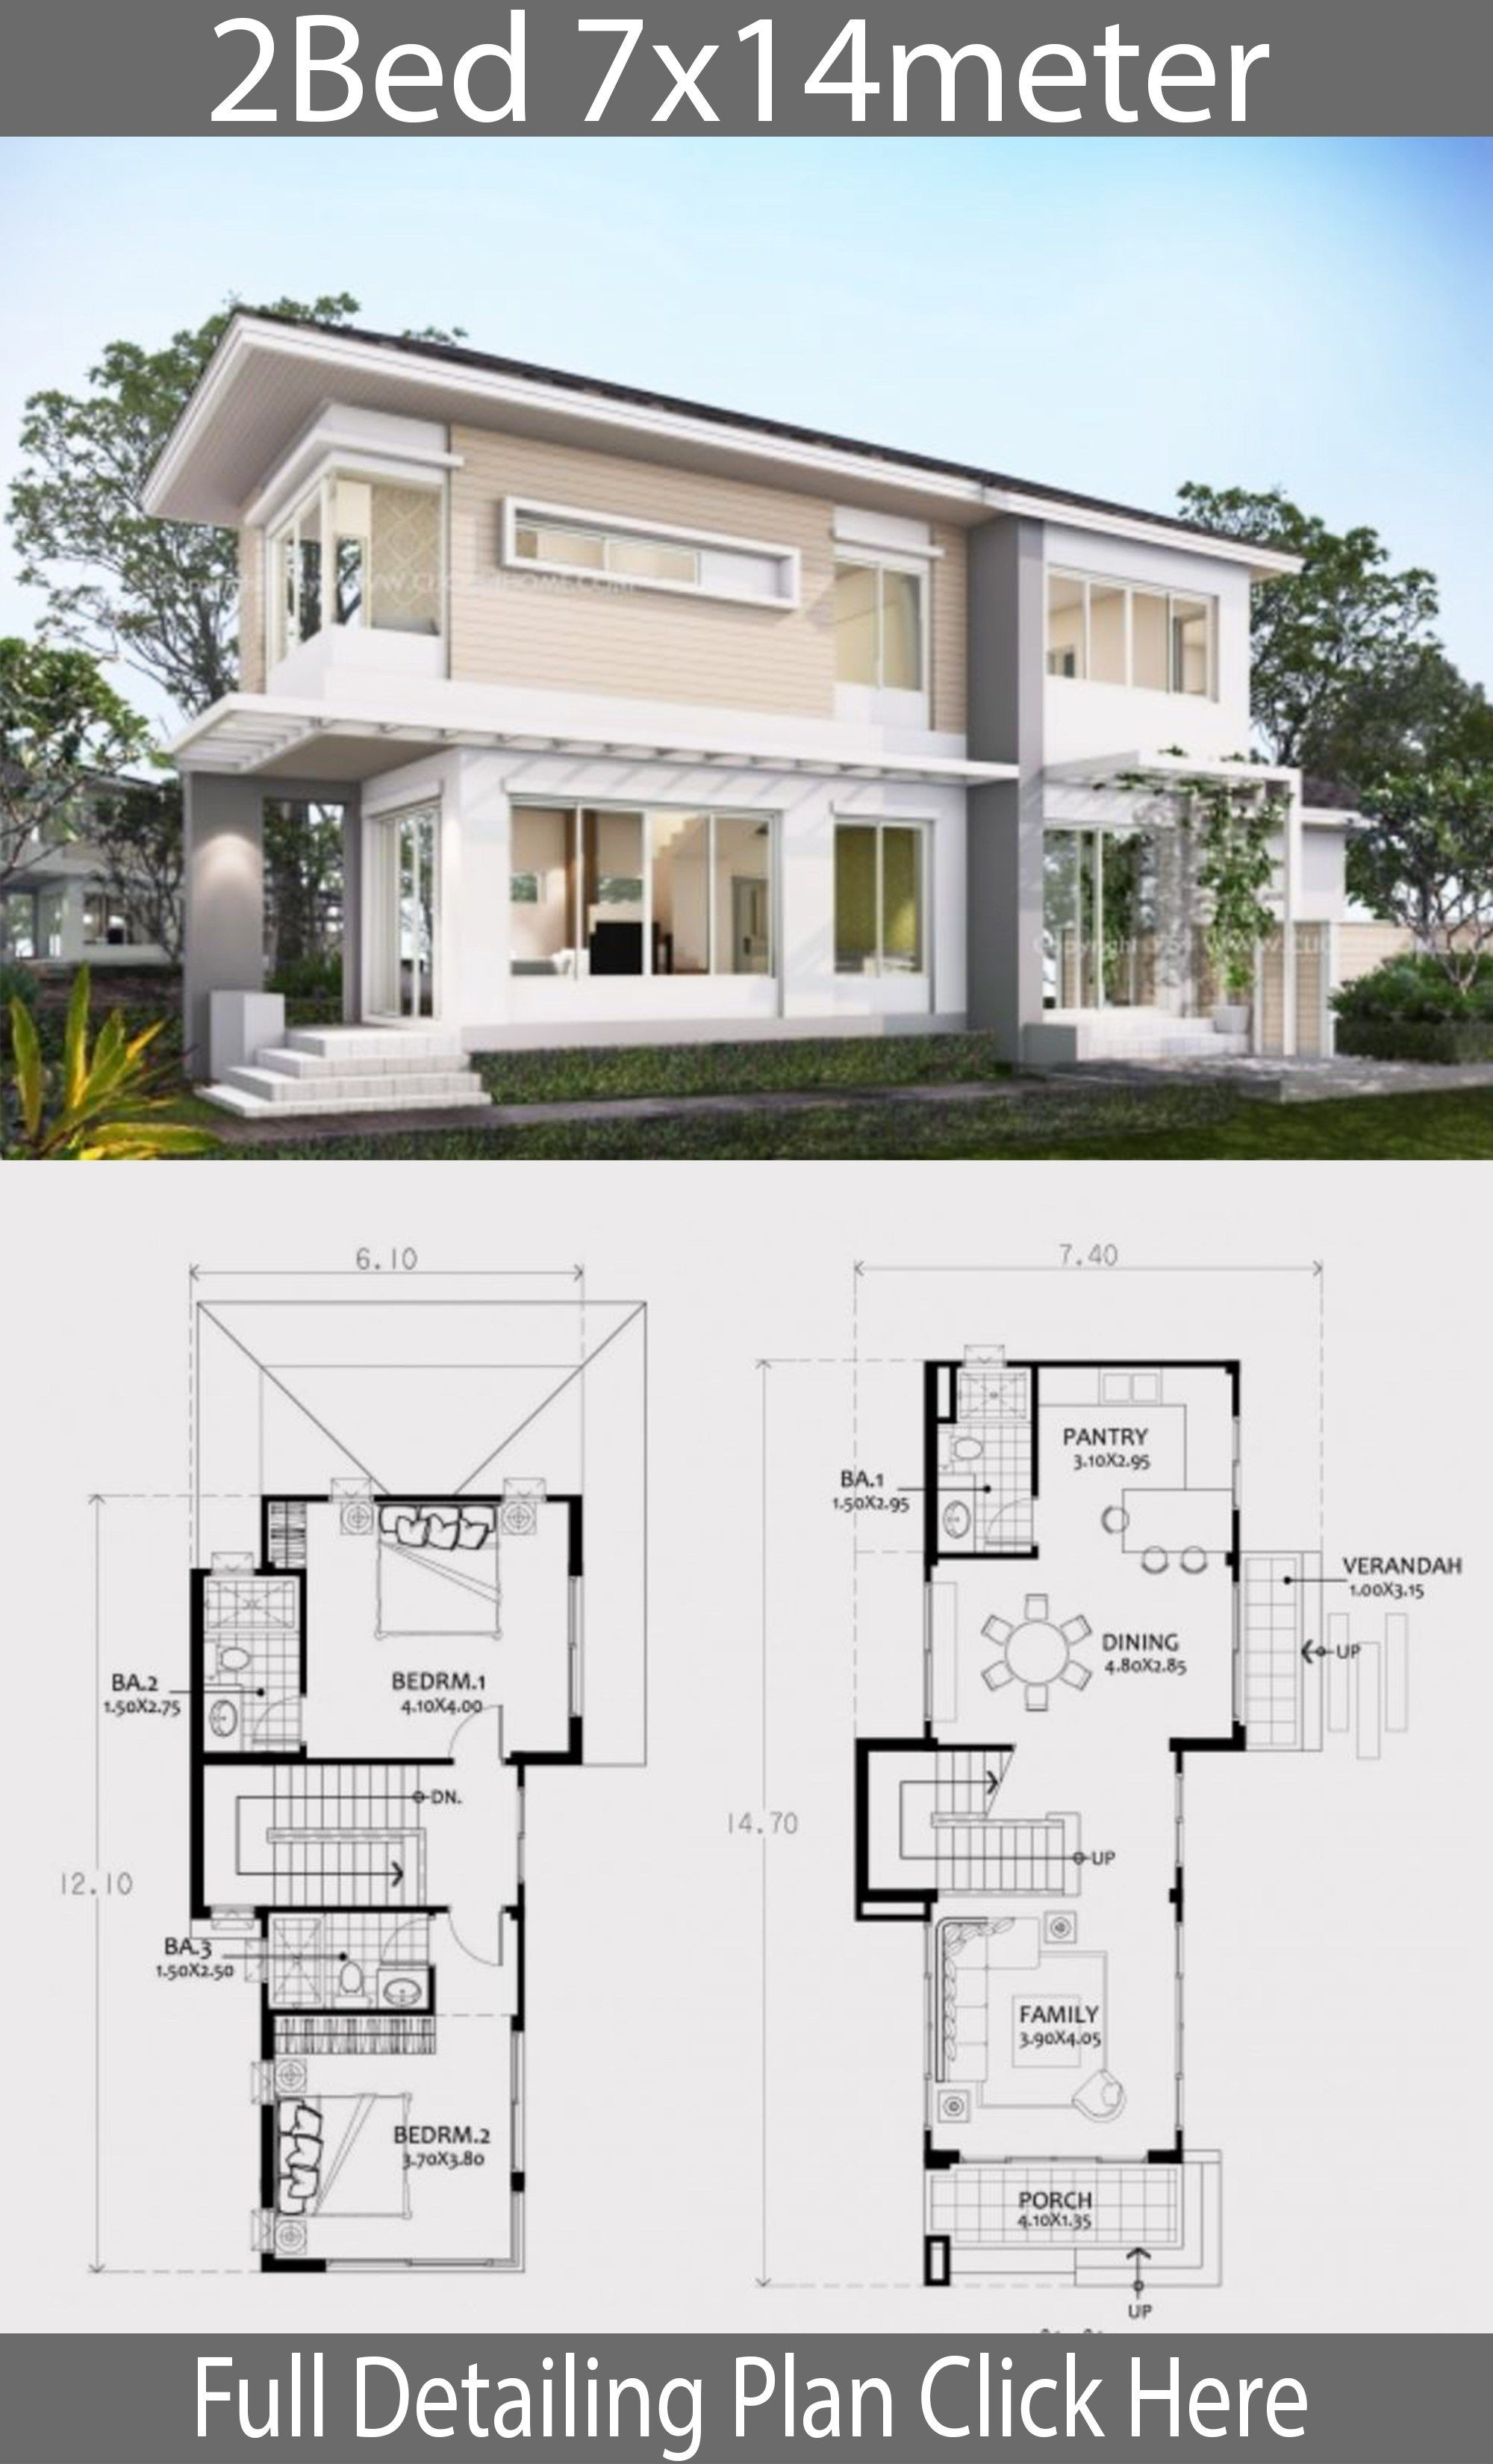 Small Two Story House Plan 7x14m Home Design With Plan Beautiful House Plans Two Story House Plans House Outside Design